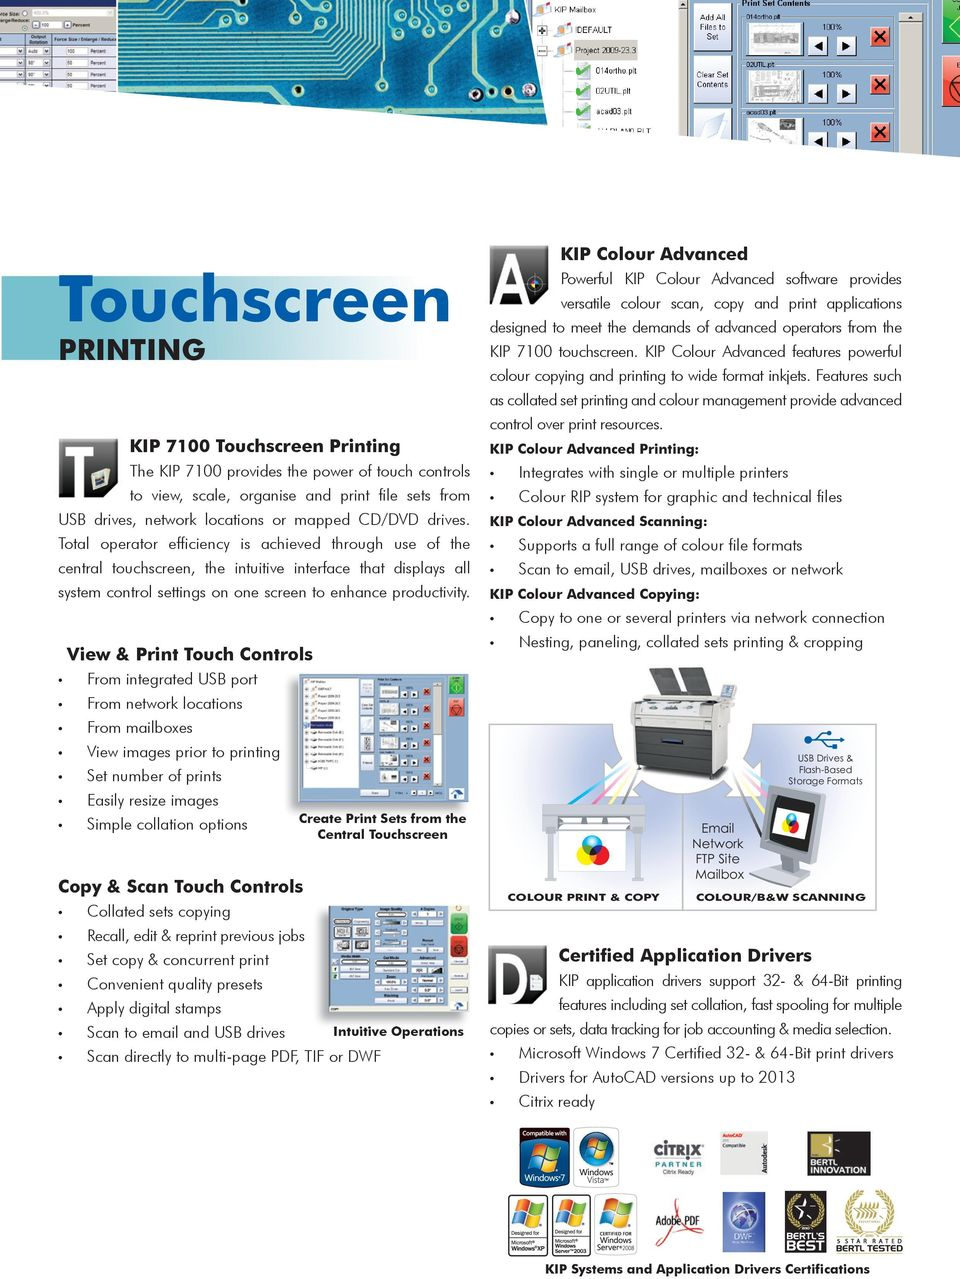 View & Print Touch Controls From integrated USB port From network locations From mailboxes View images prior to printing Set number of prints Easily resize images Simple collation options Copy & Scan